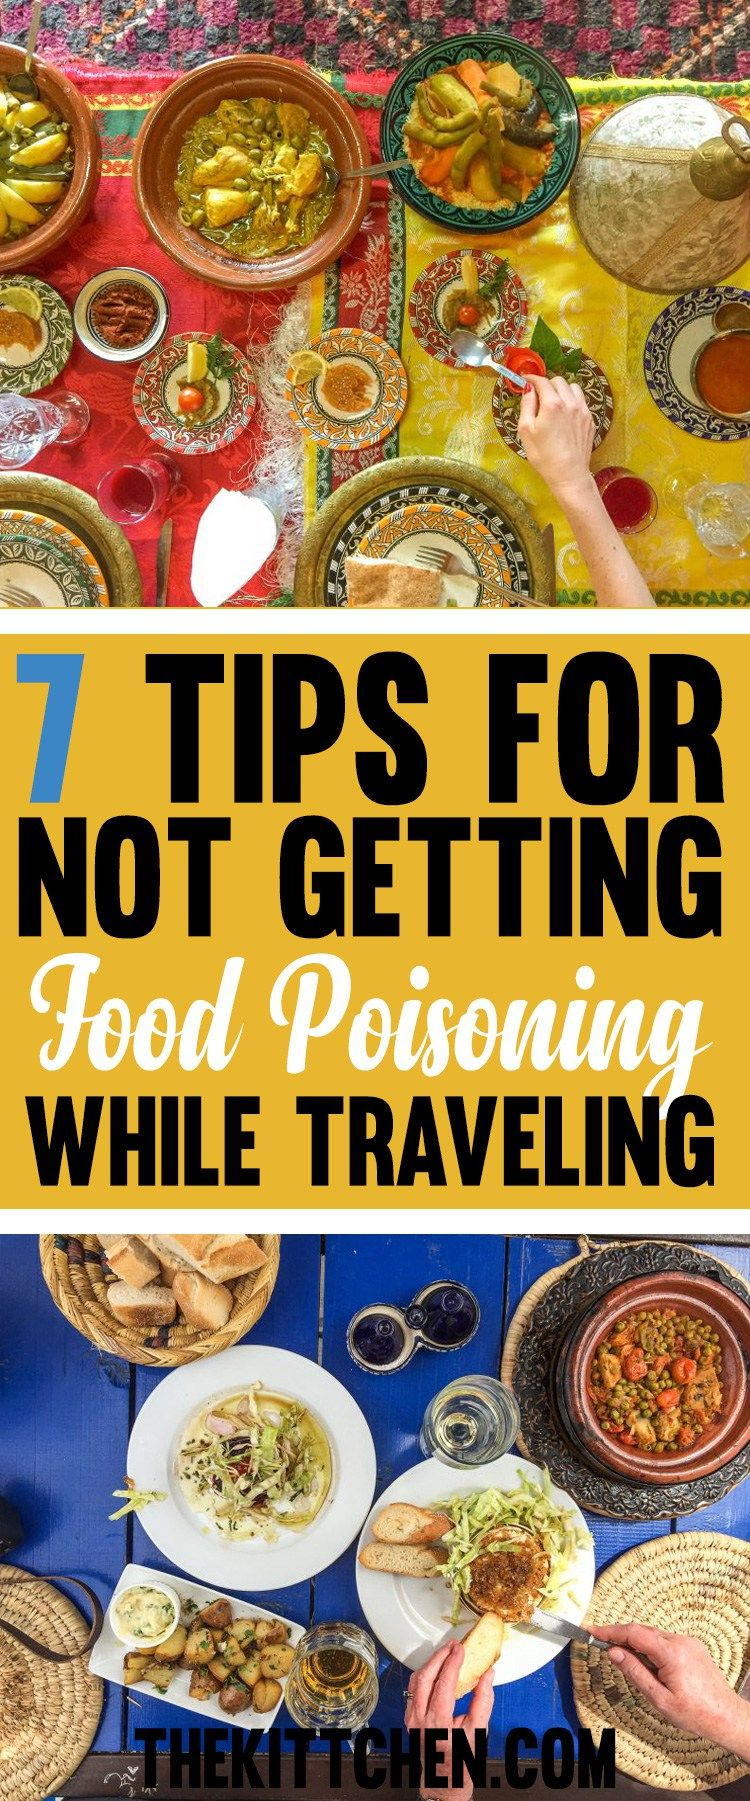 Tips for not getting food poisoning while traveling costa rica food poisoning is a vacation ruiner my sister kelly has taught me lots forumfinder Images